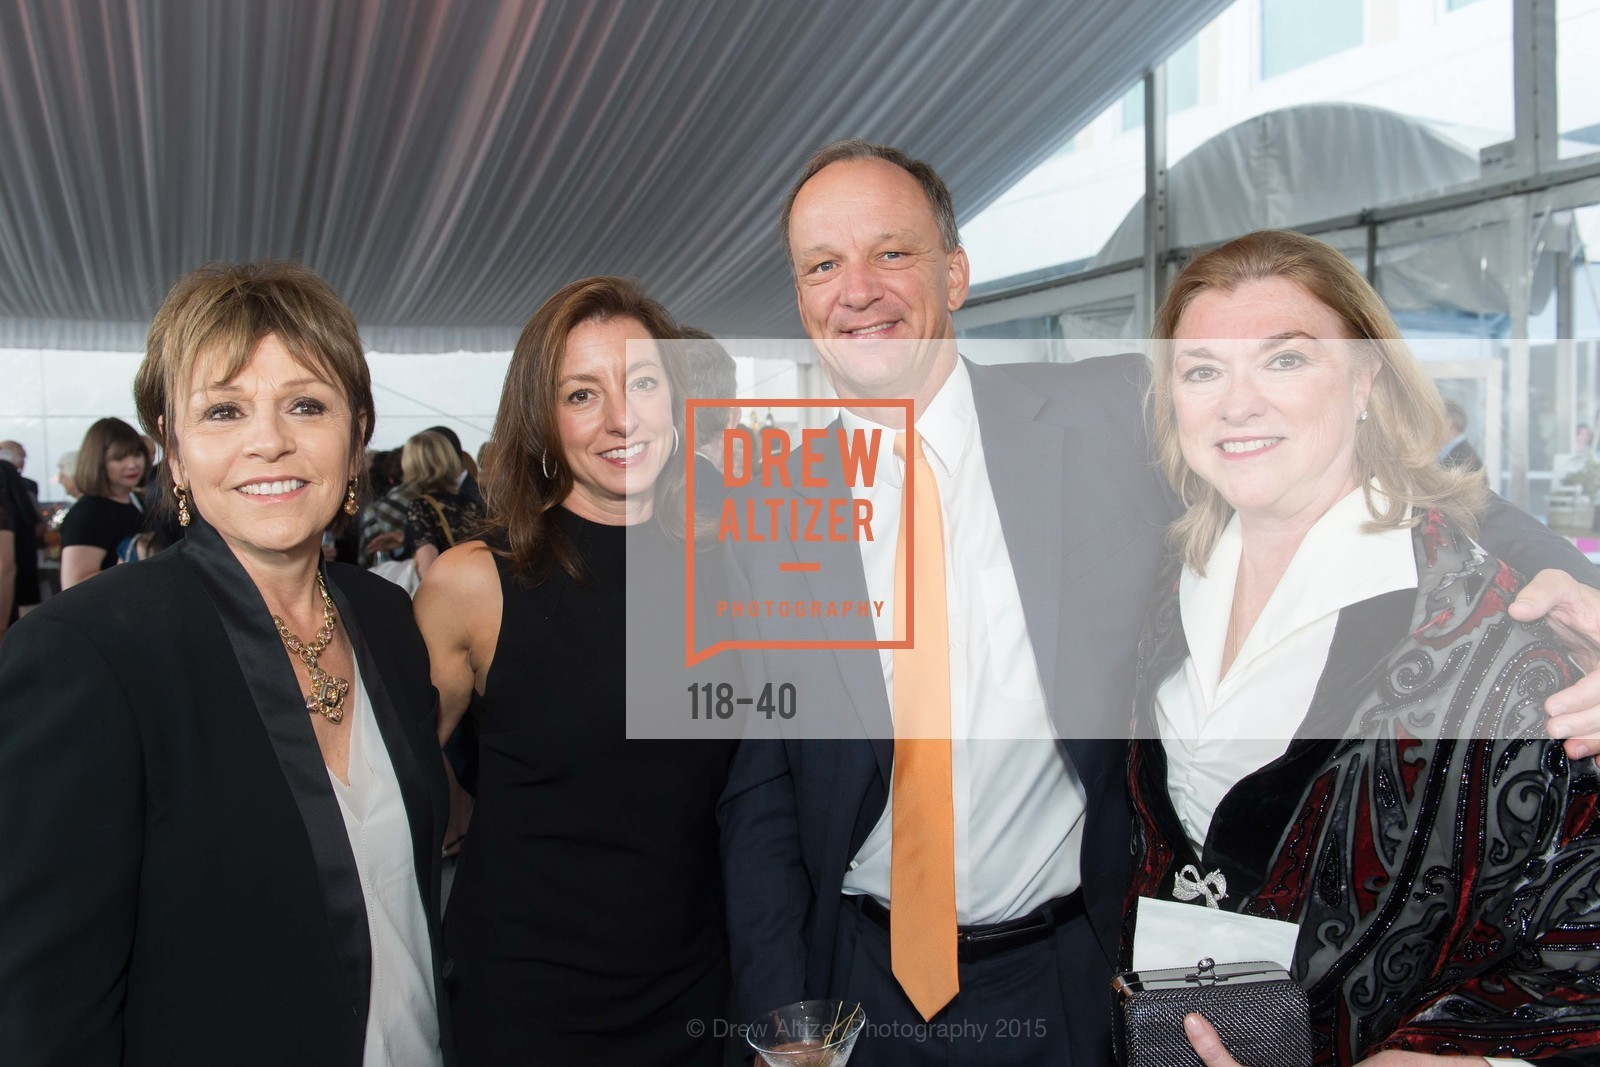 Rebecca Faigone, Carla Hultman, Danny Hultman, Marty Sullivan,  Catholic Charities Loaves & Fishes, St. Regis, April 18th, 2015,Drew Altizer, Drew Altizer Photography, full-service agency, private events, San Francisco photographer, photographer california